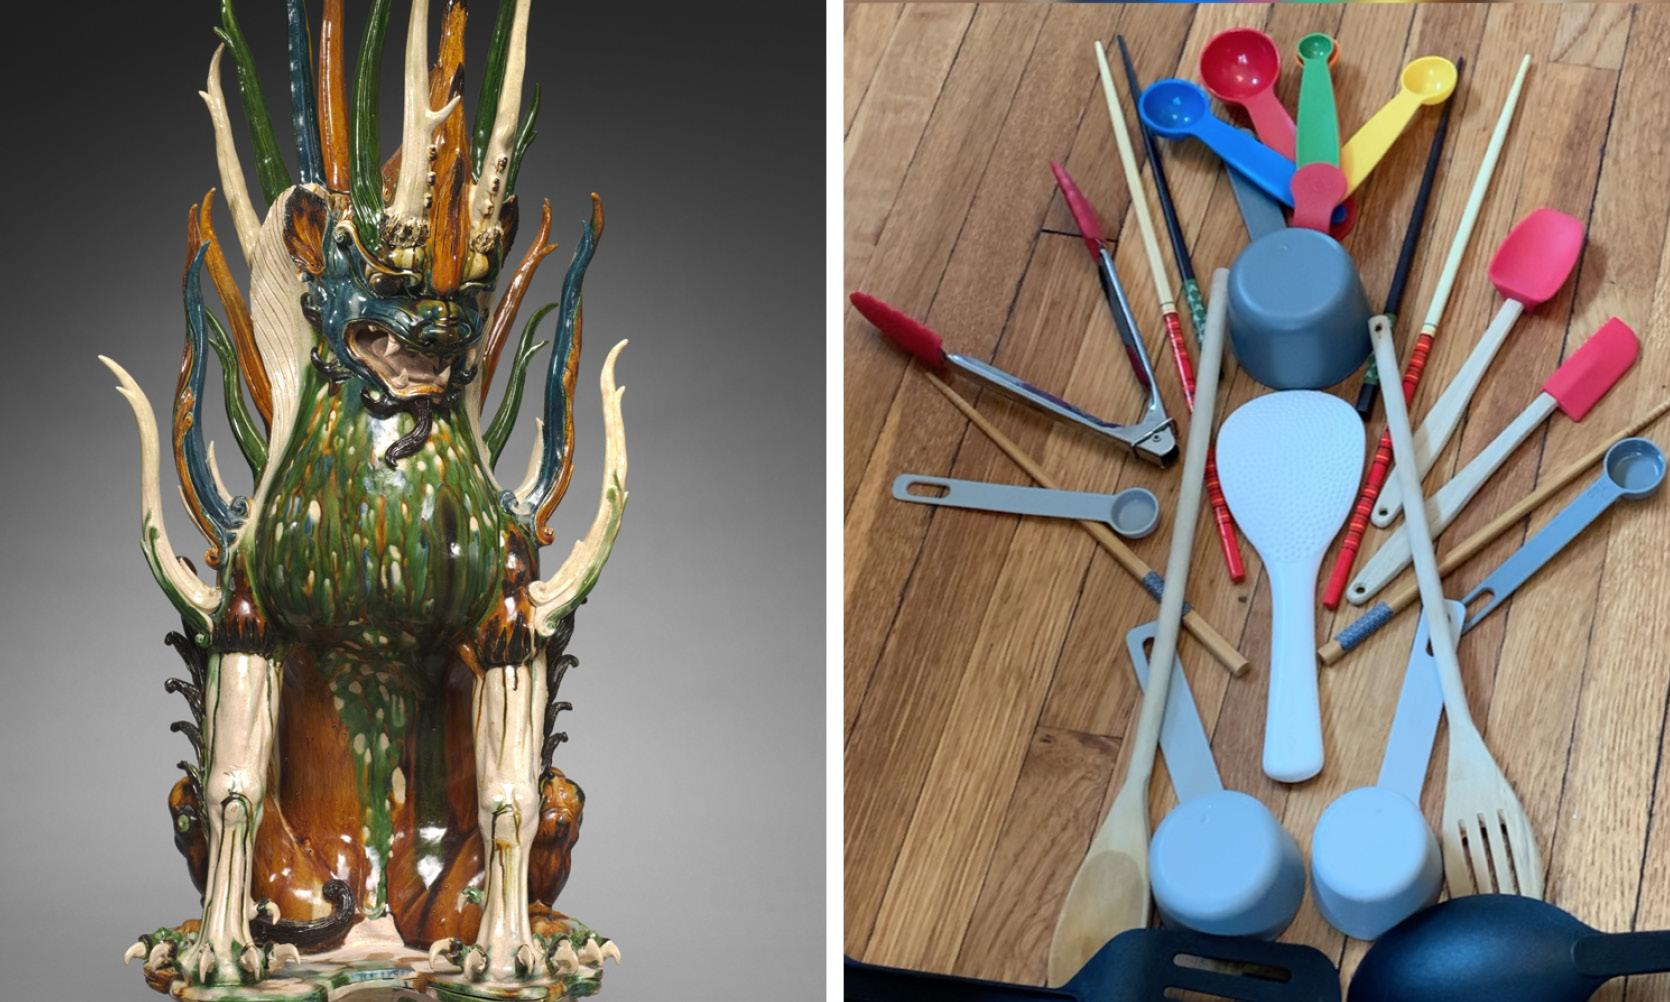 A statue next to a homemade recreation of it with kitchen utensils